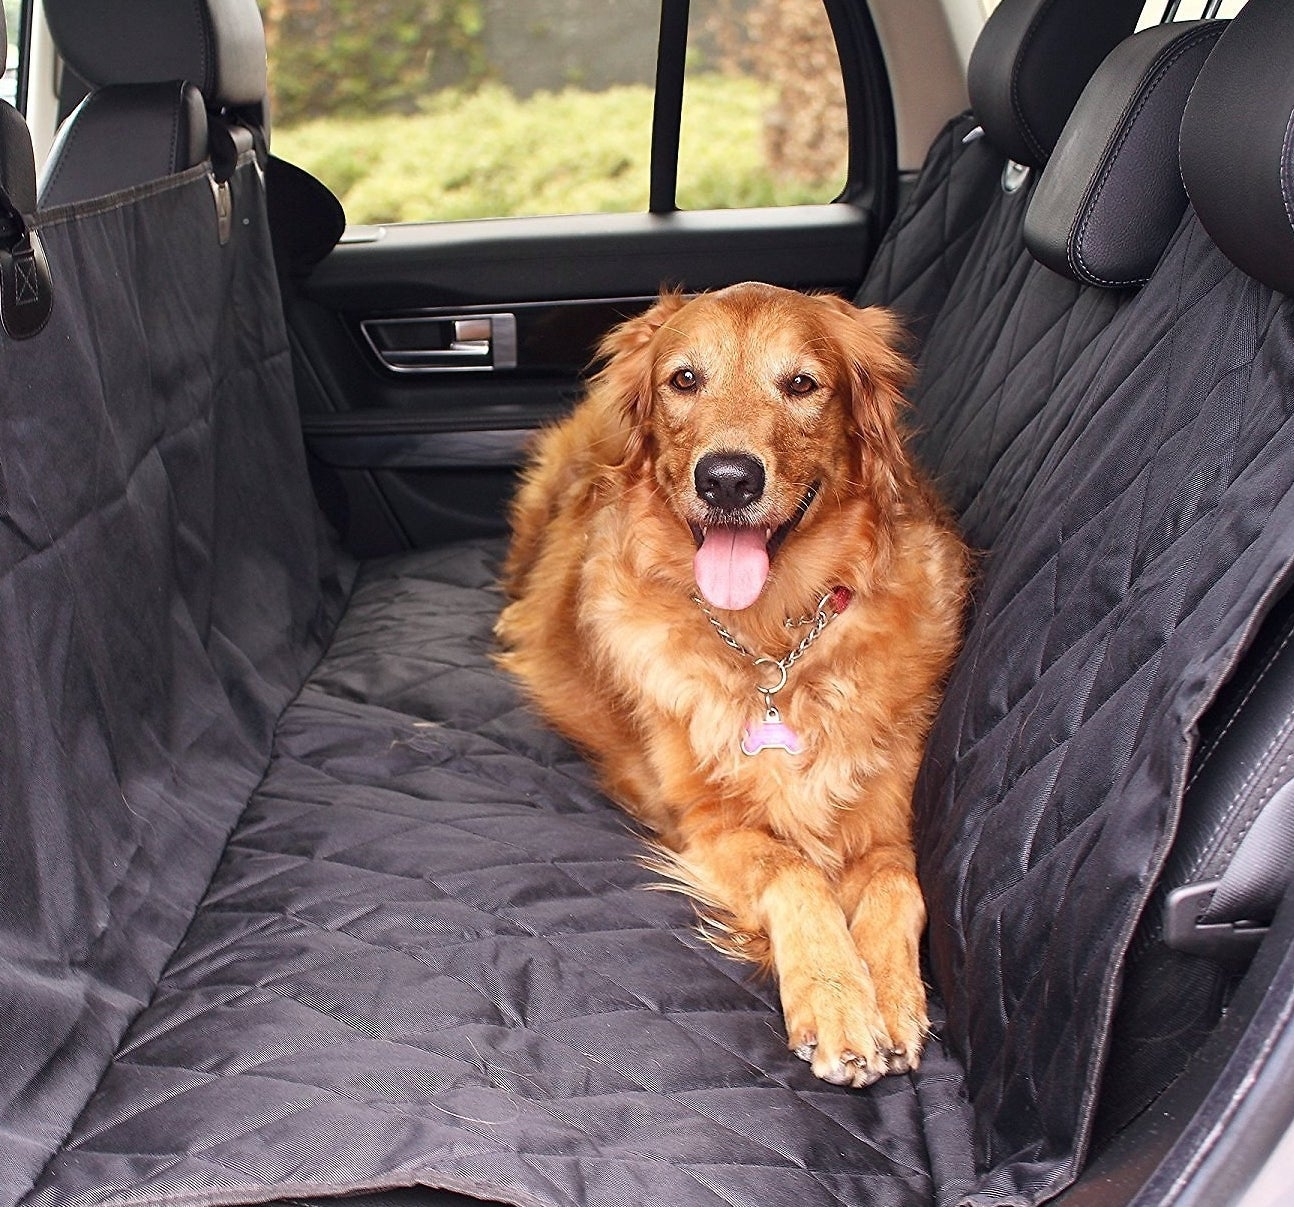 A Golden Retriever laying down in the backseat of a car with a car seat cover over the seats